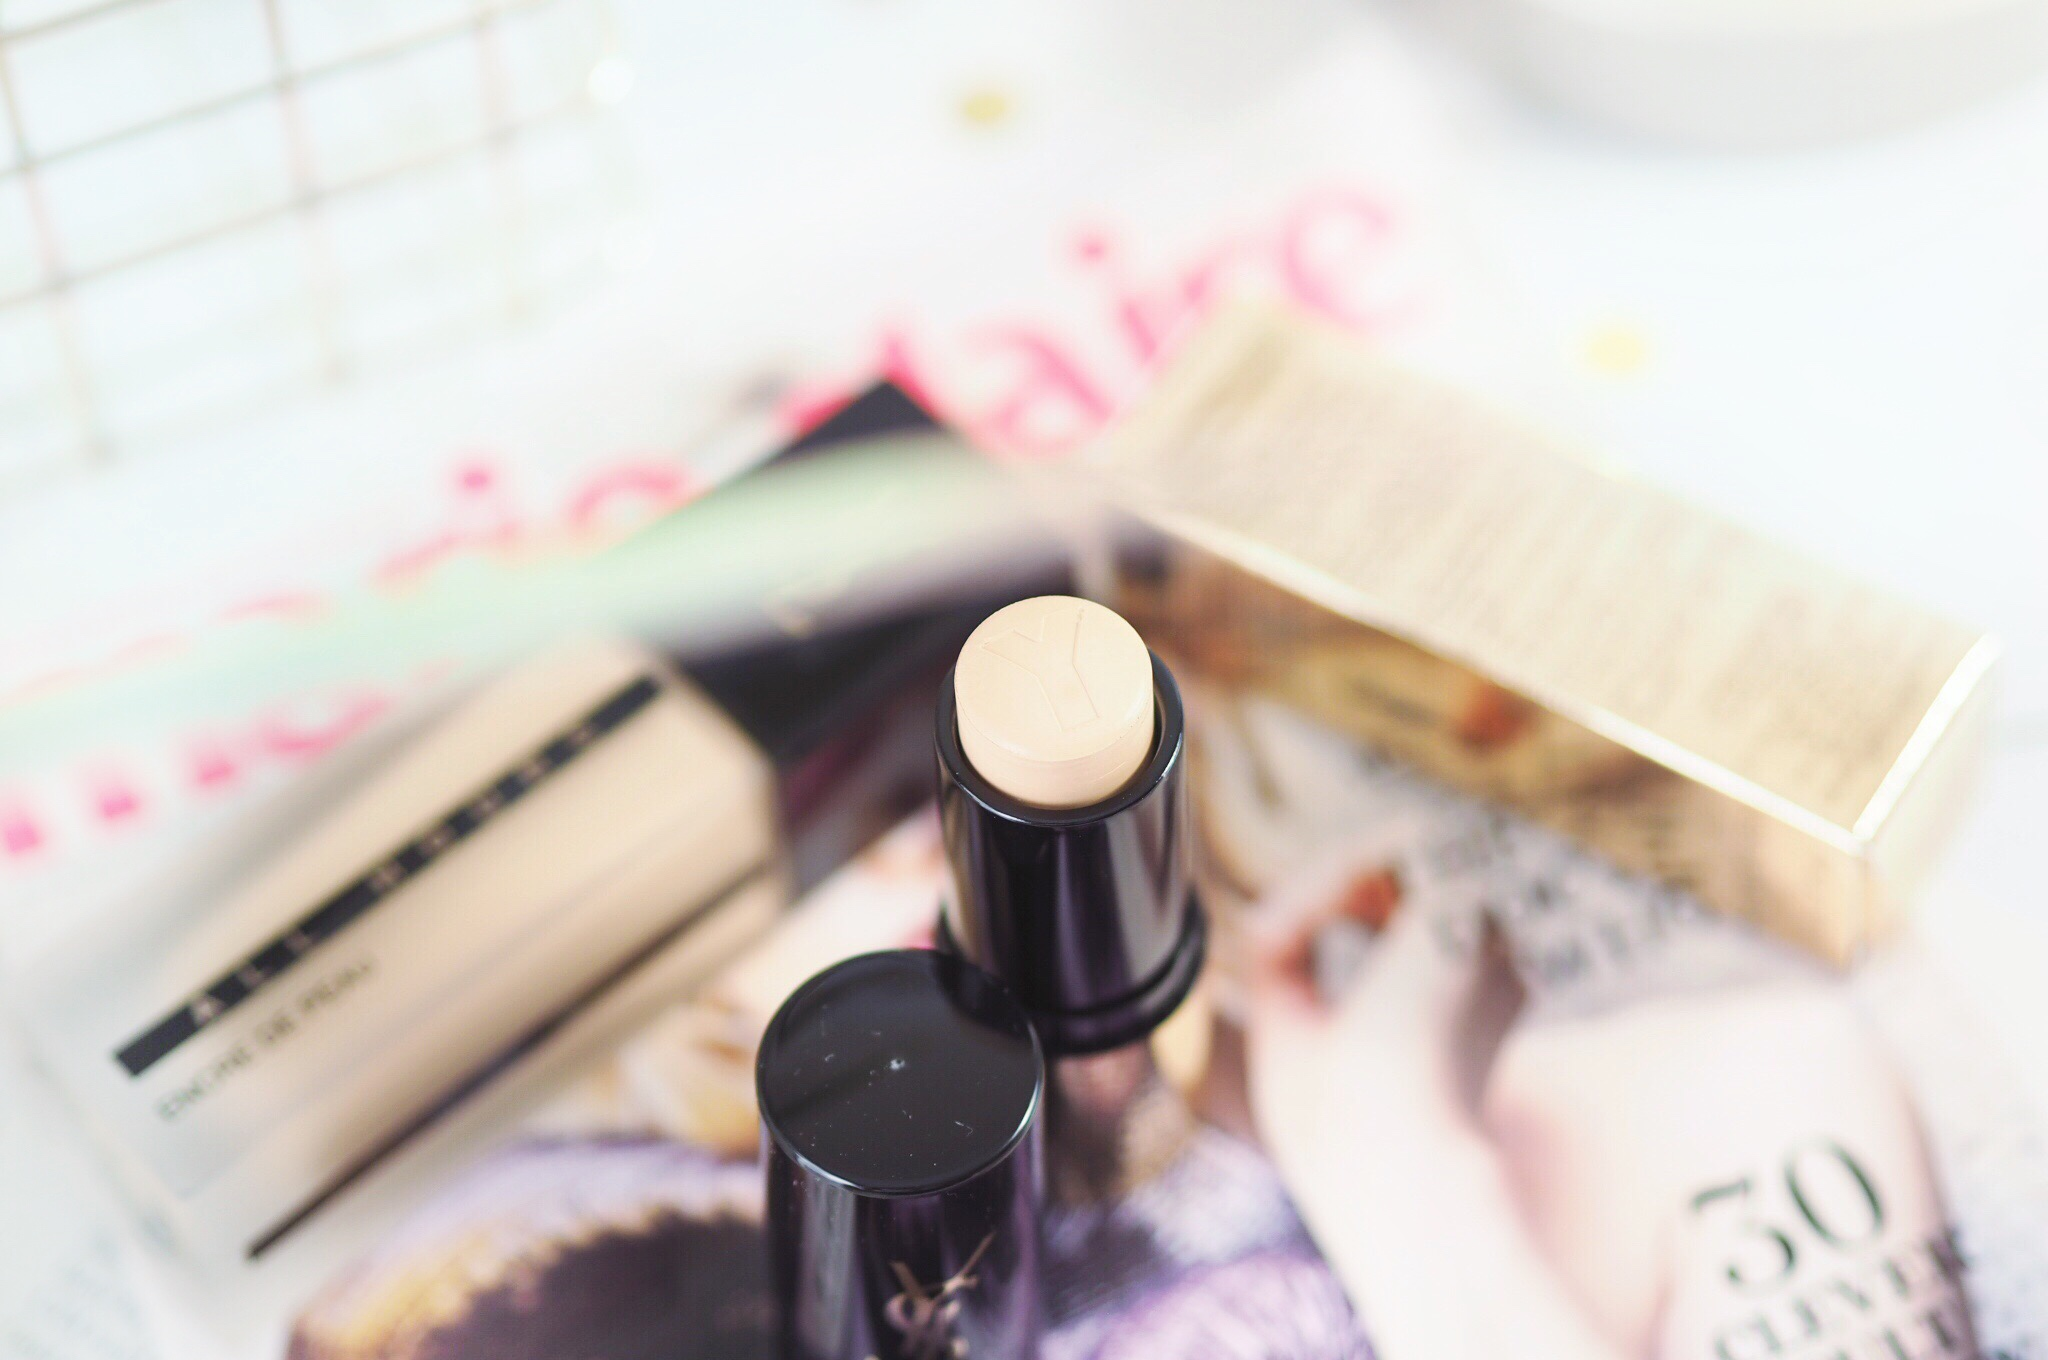 Yves Saint Laurent All Hours Foundation Stick Review